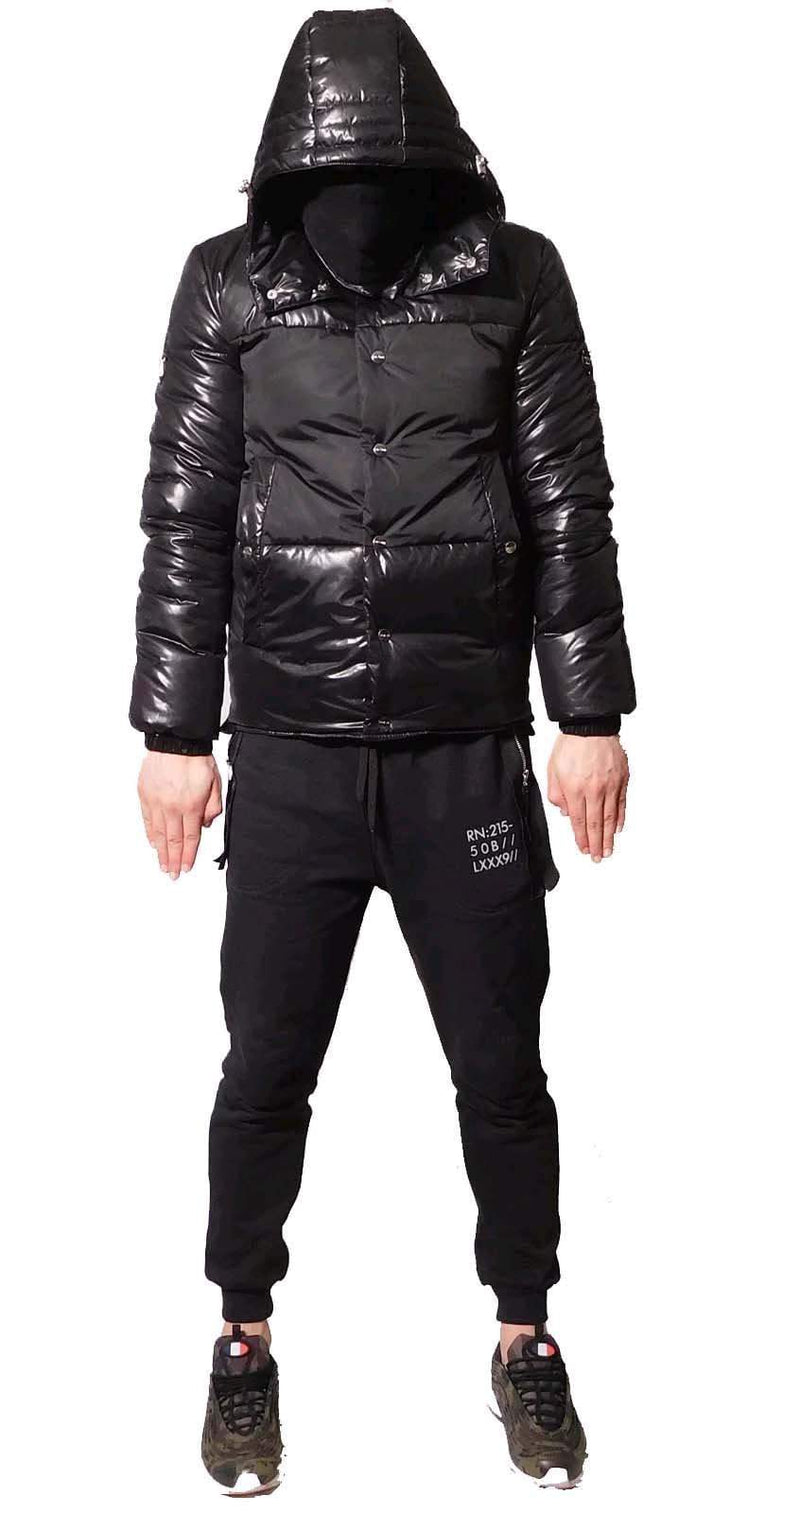 Stealth London Clothing Co Small  (Relaxed Fit) Surge Puffa Jacket